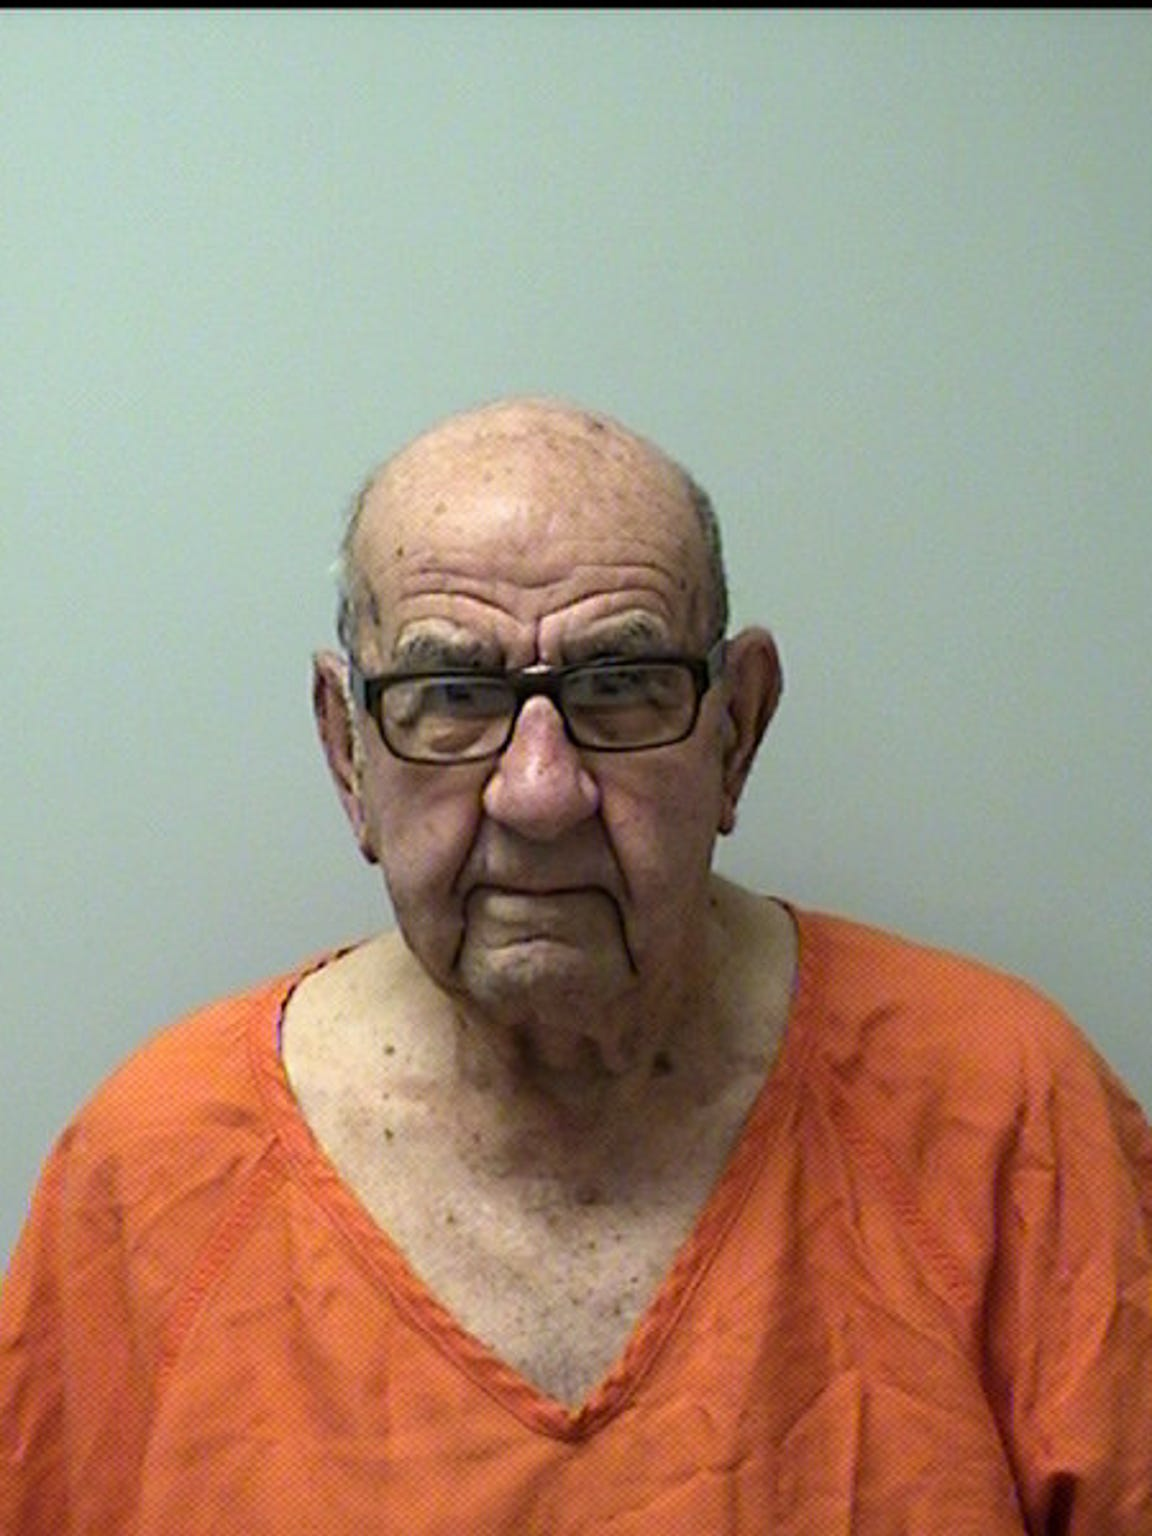 Added March 18, 2015: Edward Heckendorf, 91, of Wausau. Felony charge of bail jumping filed March 12.